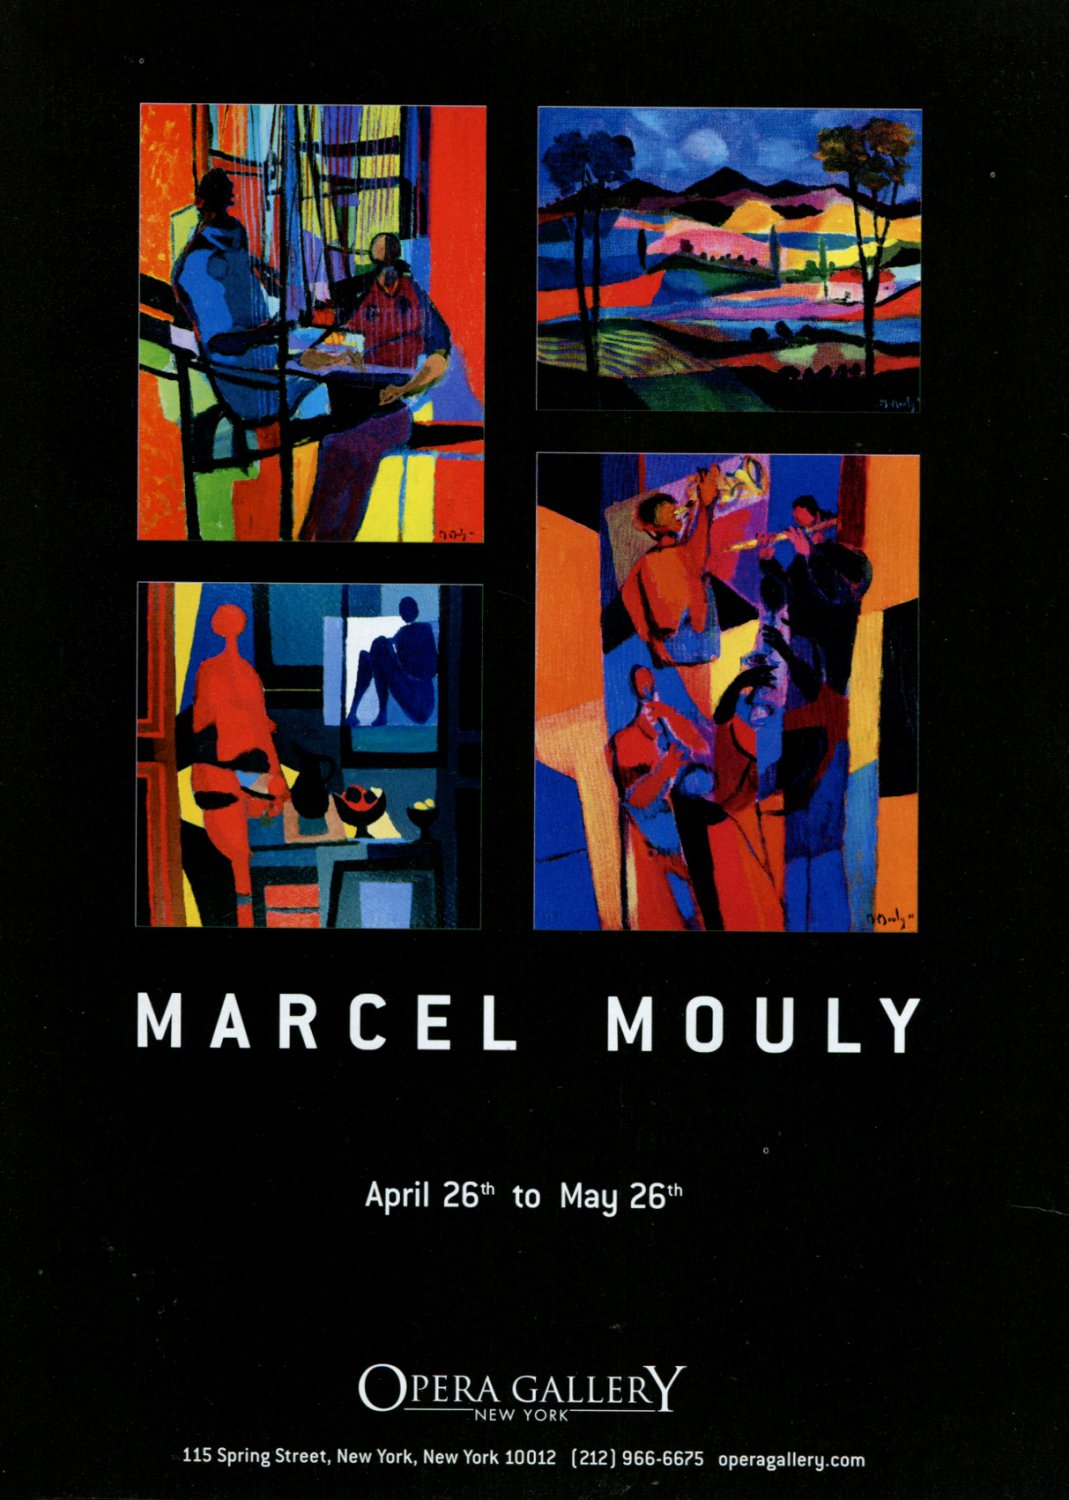 Marcel Mouly 2002 Art Exhibition Ad Advert